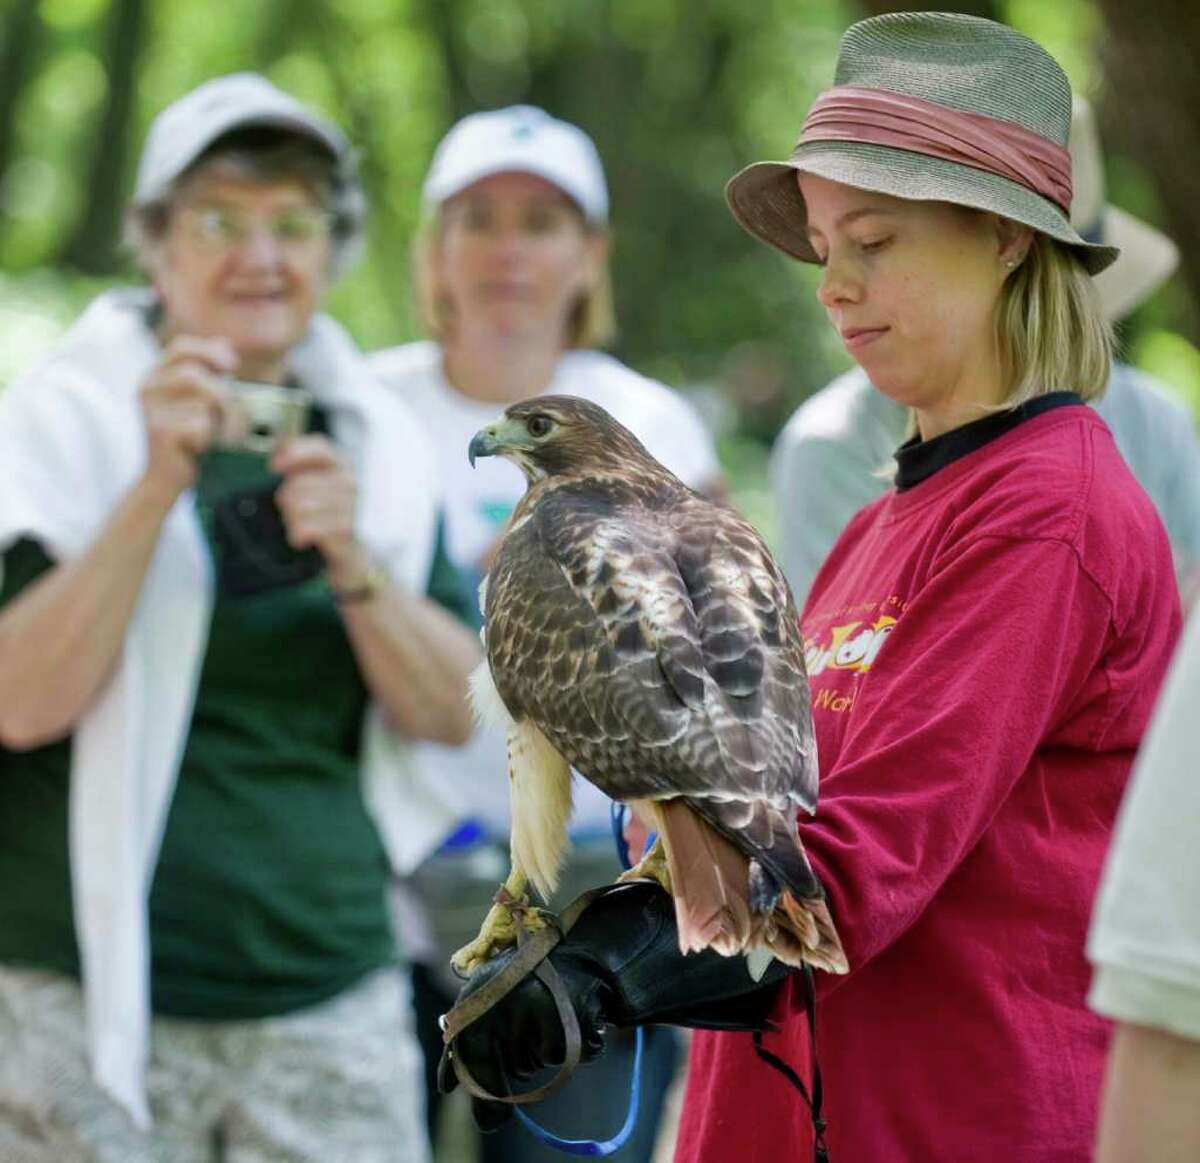 Kelley Phifer, of the Sharon Audubon Center, holds Mandy, a red-tailed hawk, at the Still River Greenway Day event on Corporate Drive in Danbury. Saturday, June 4, 2011.